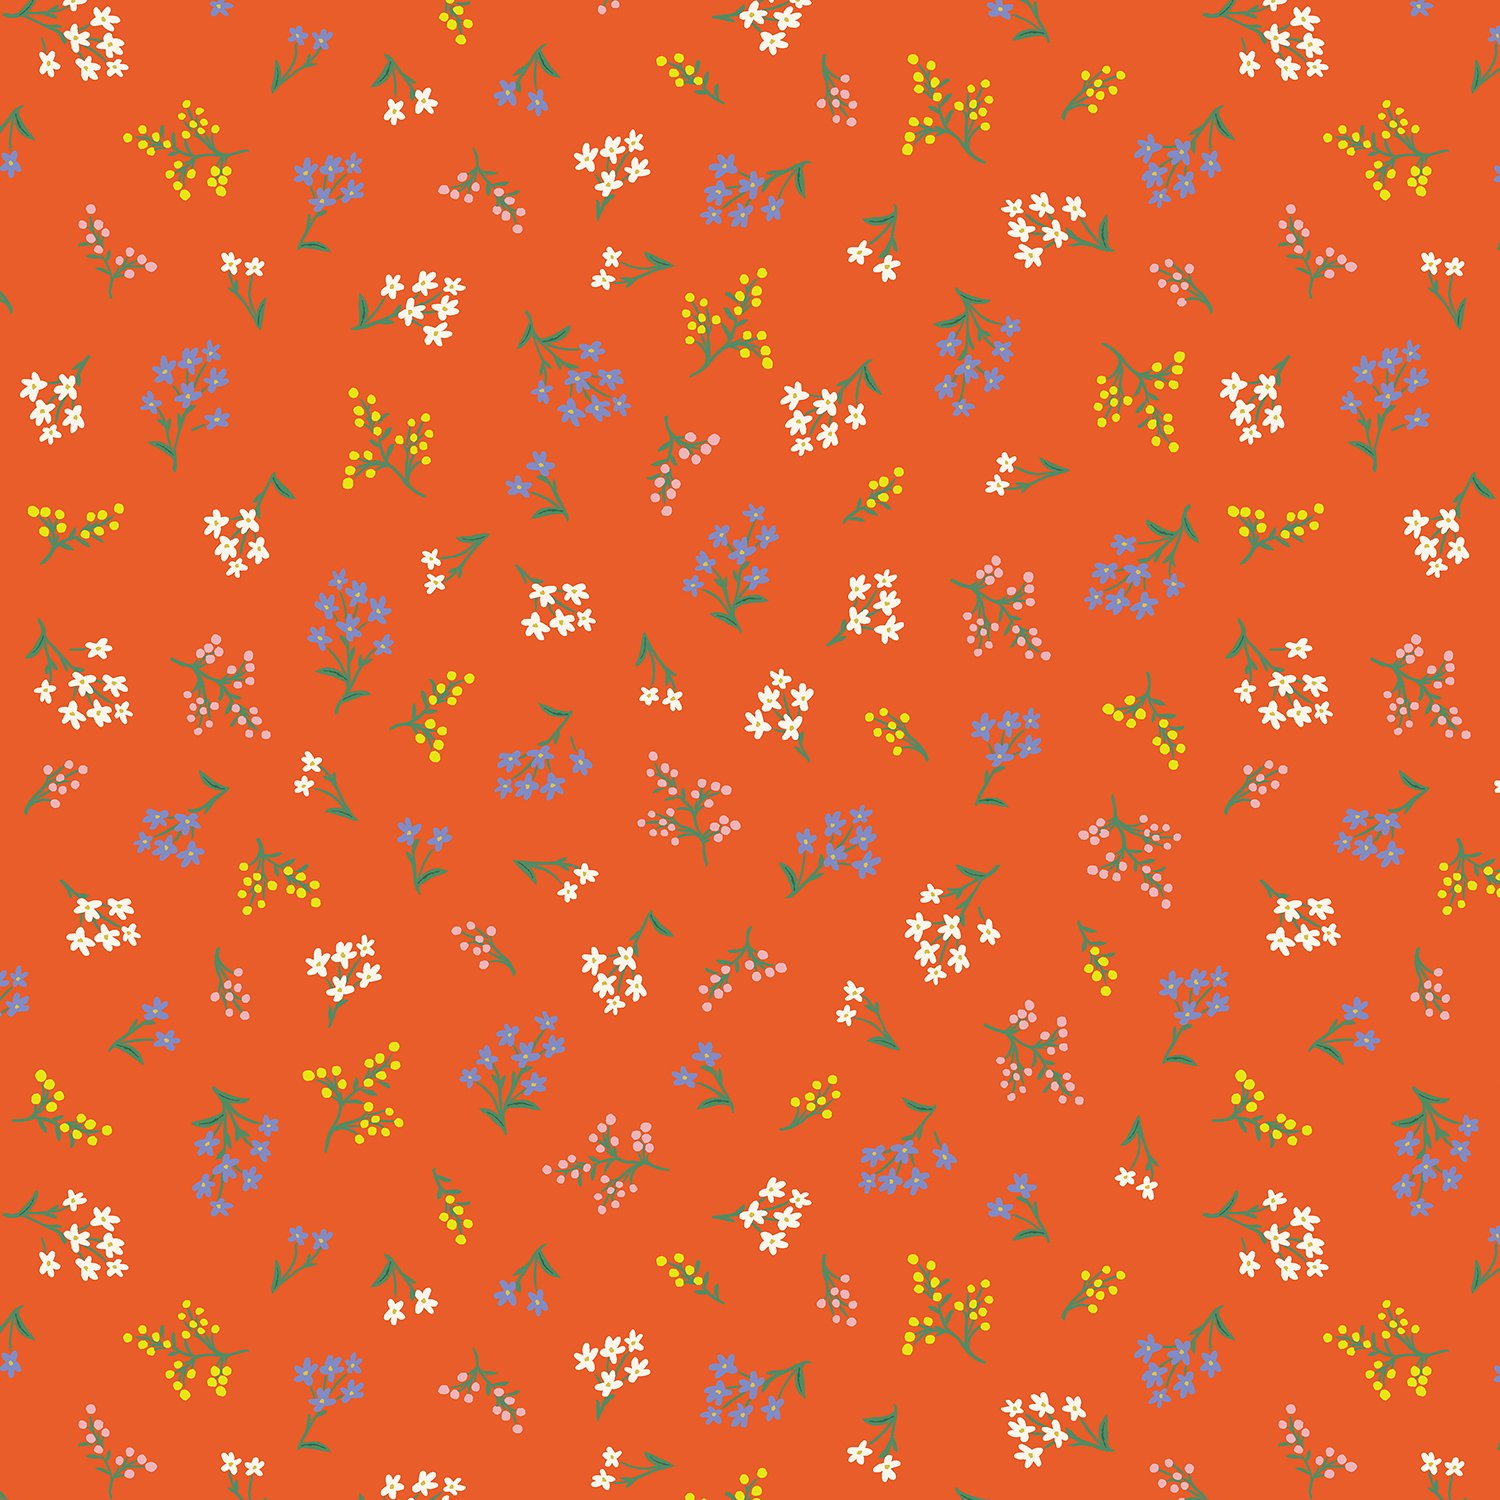 Rifle Strawberry Fields Petites Fleurs in Red